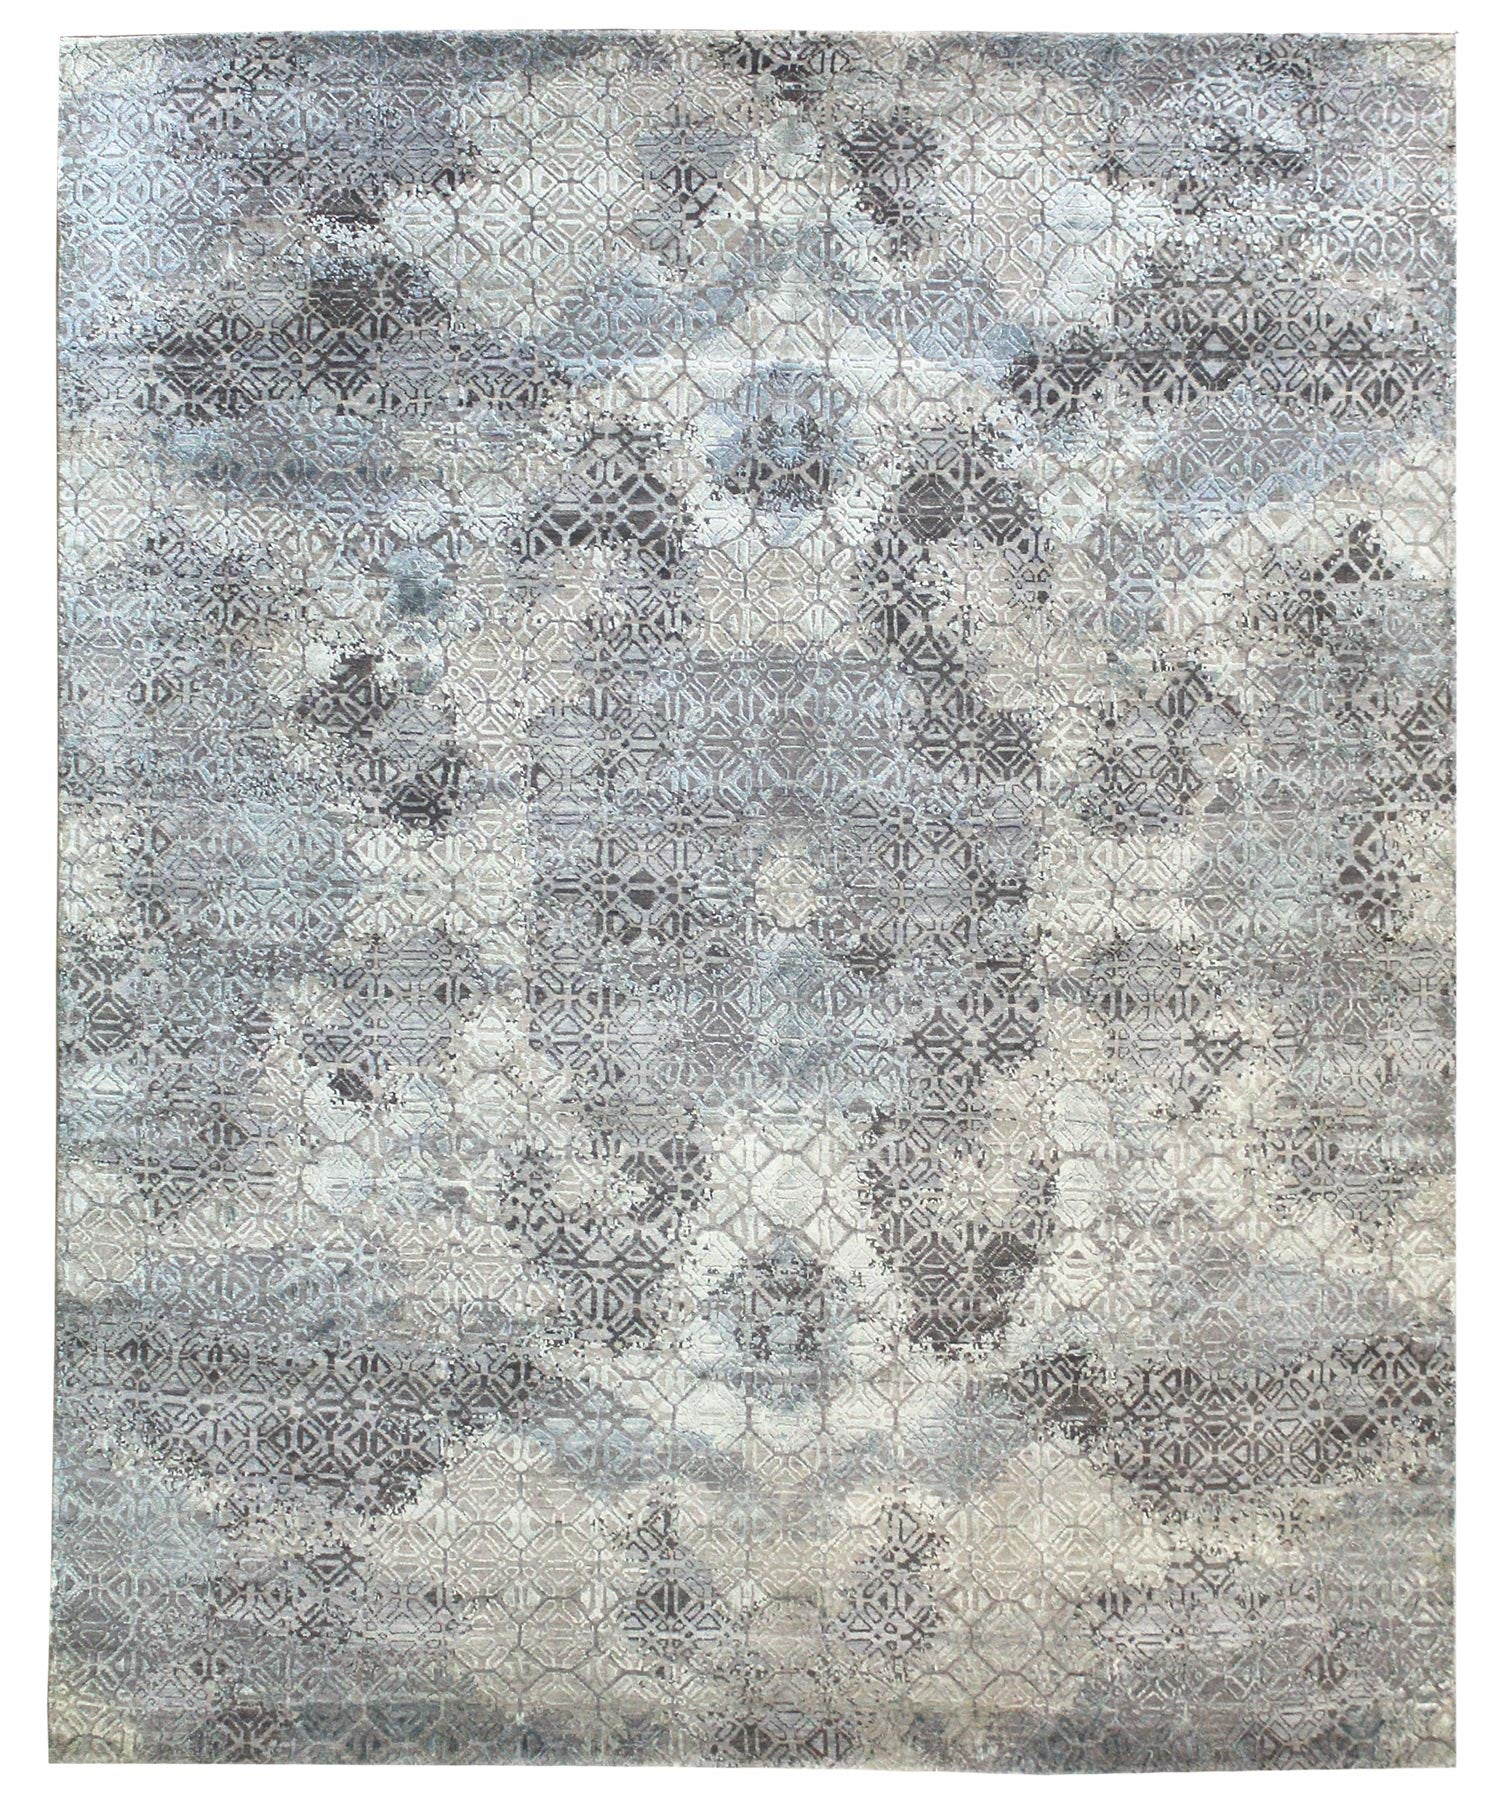 Hive Handwoven Transitional Rug